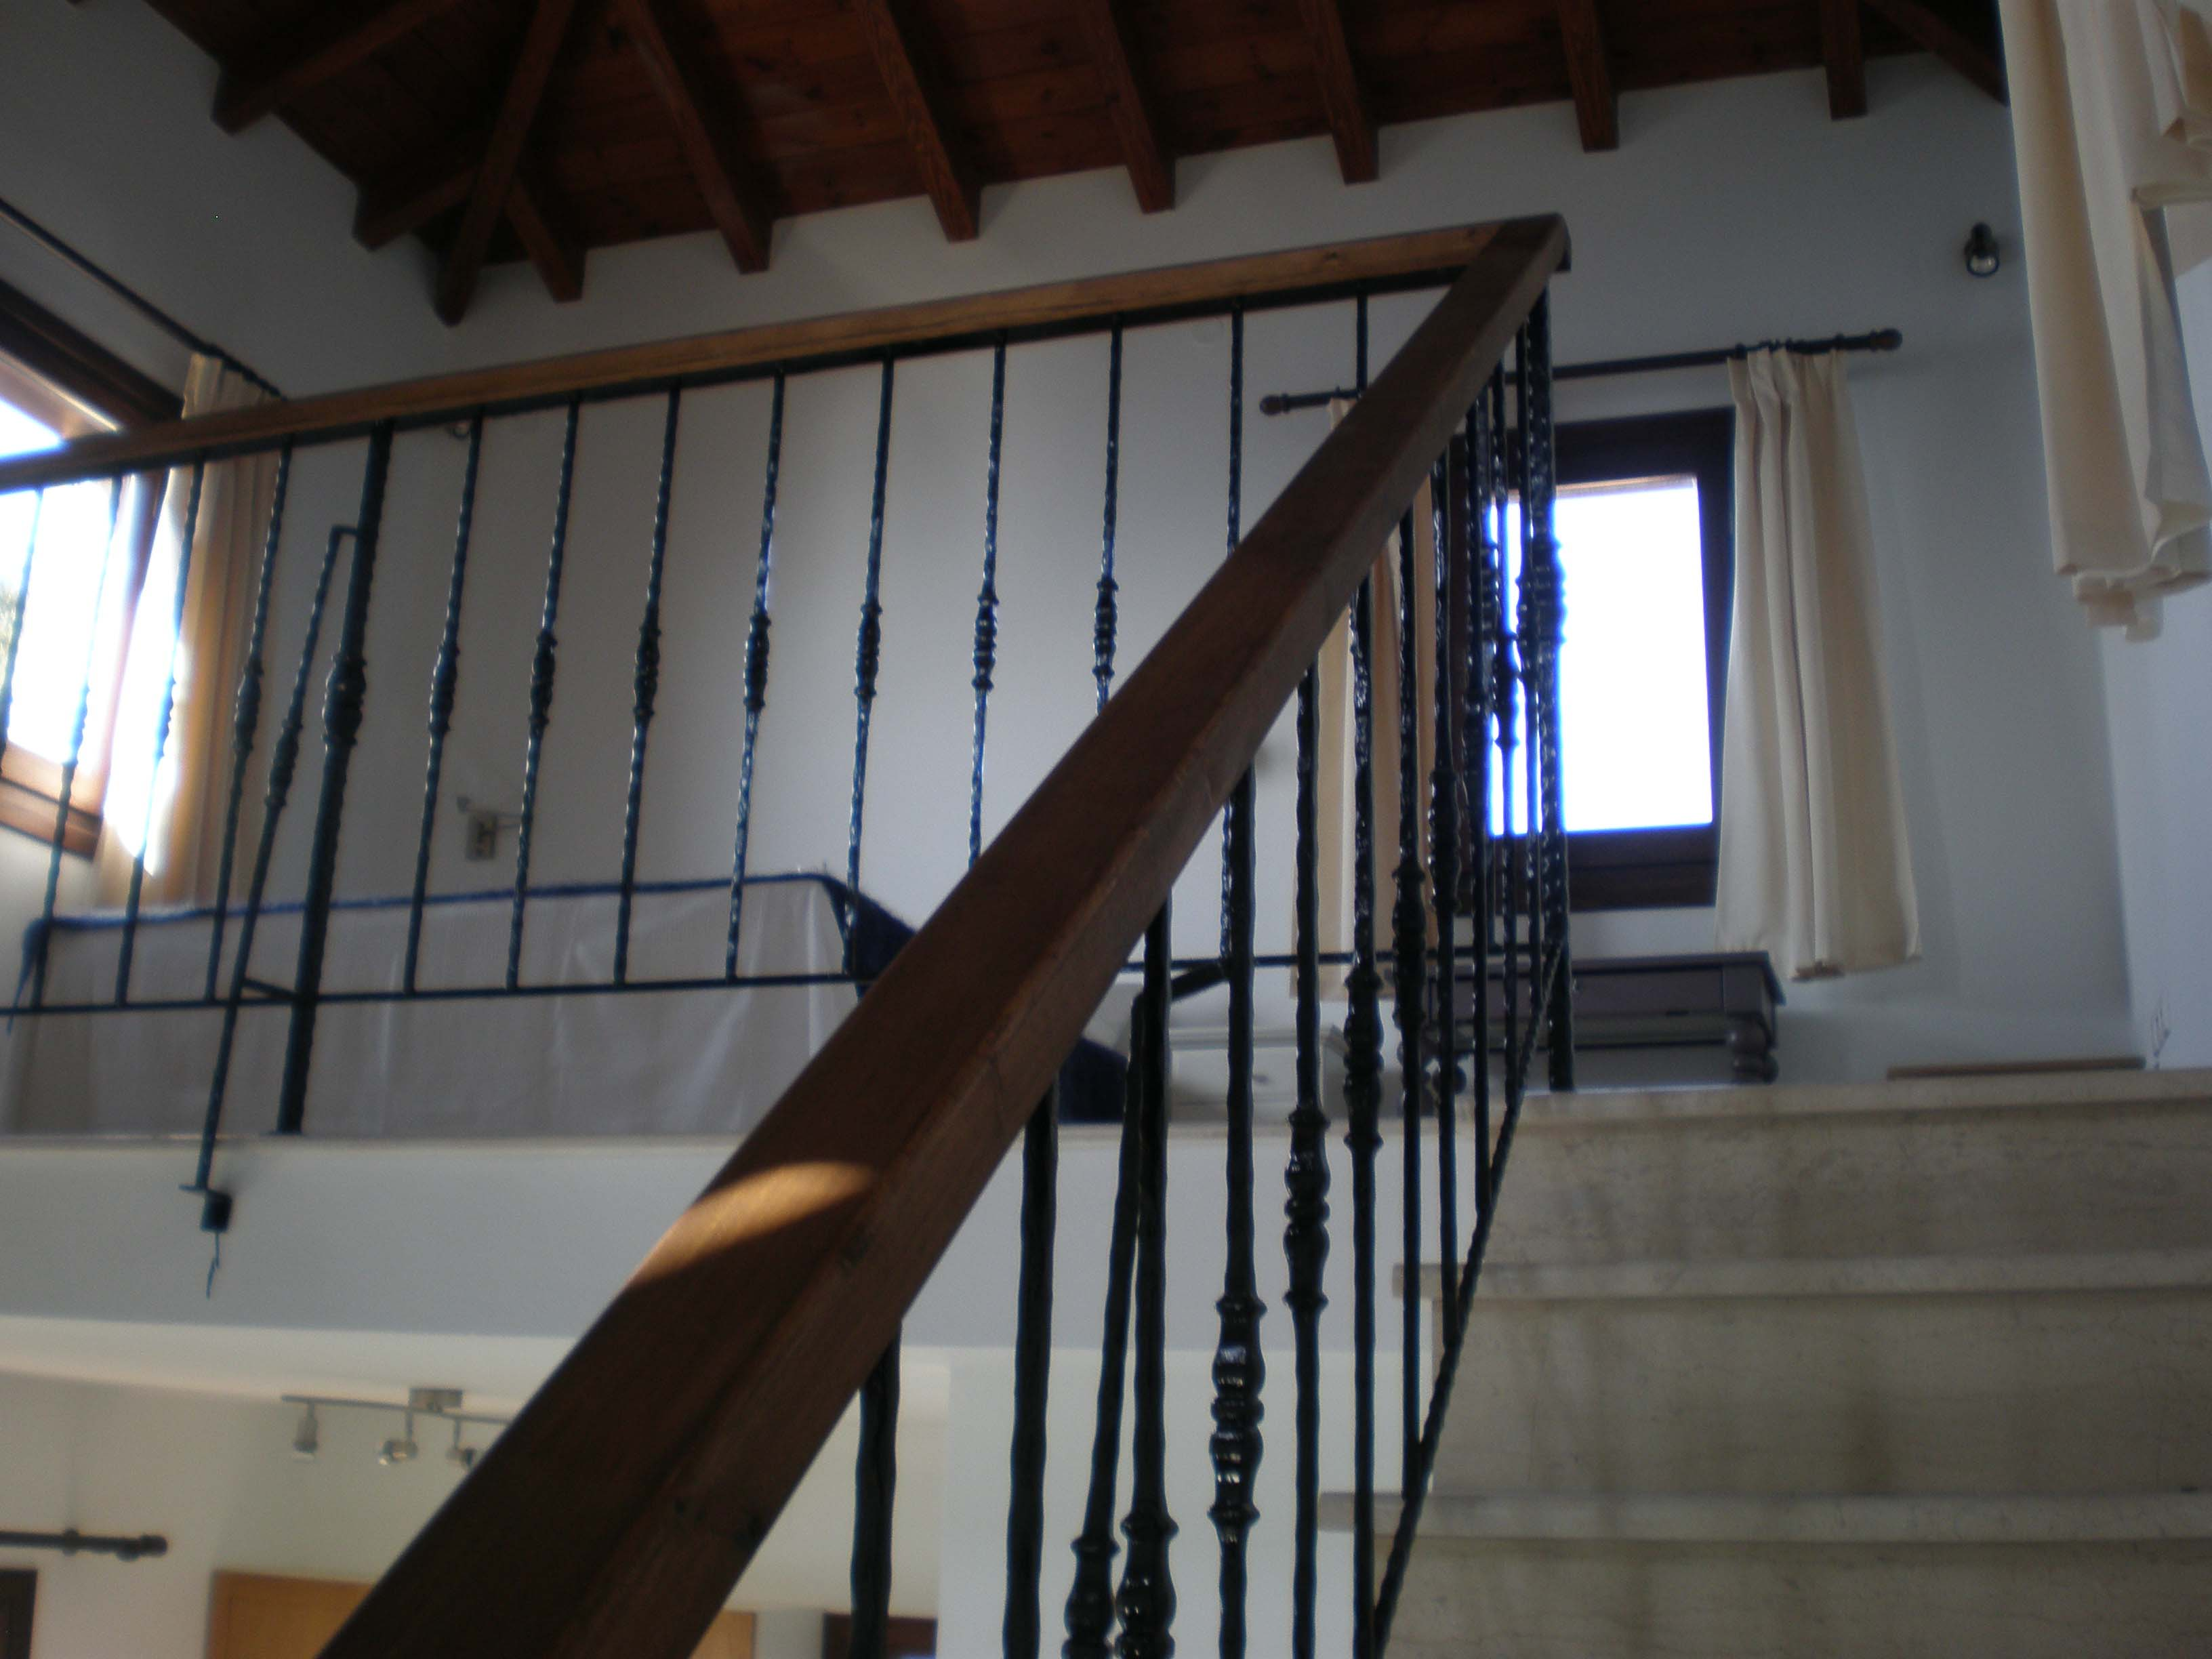 Stairs to galleried bedroom